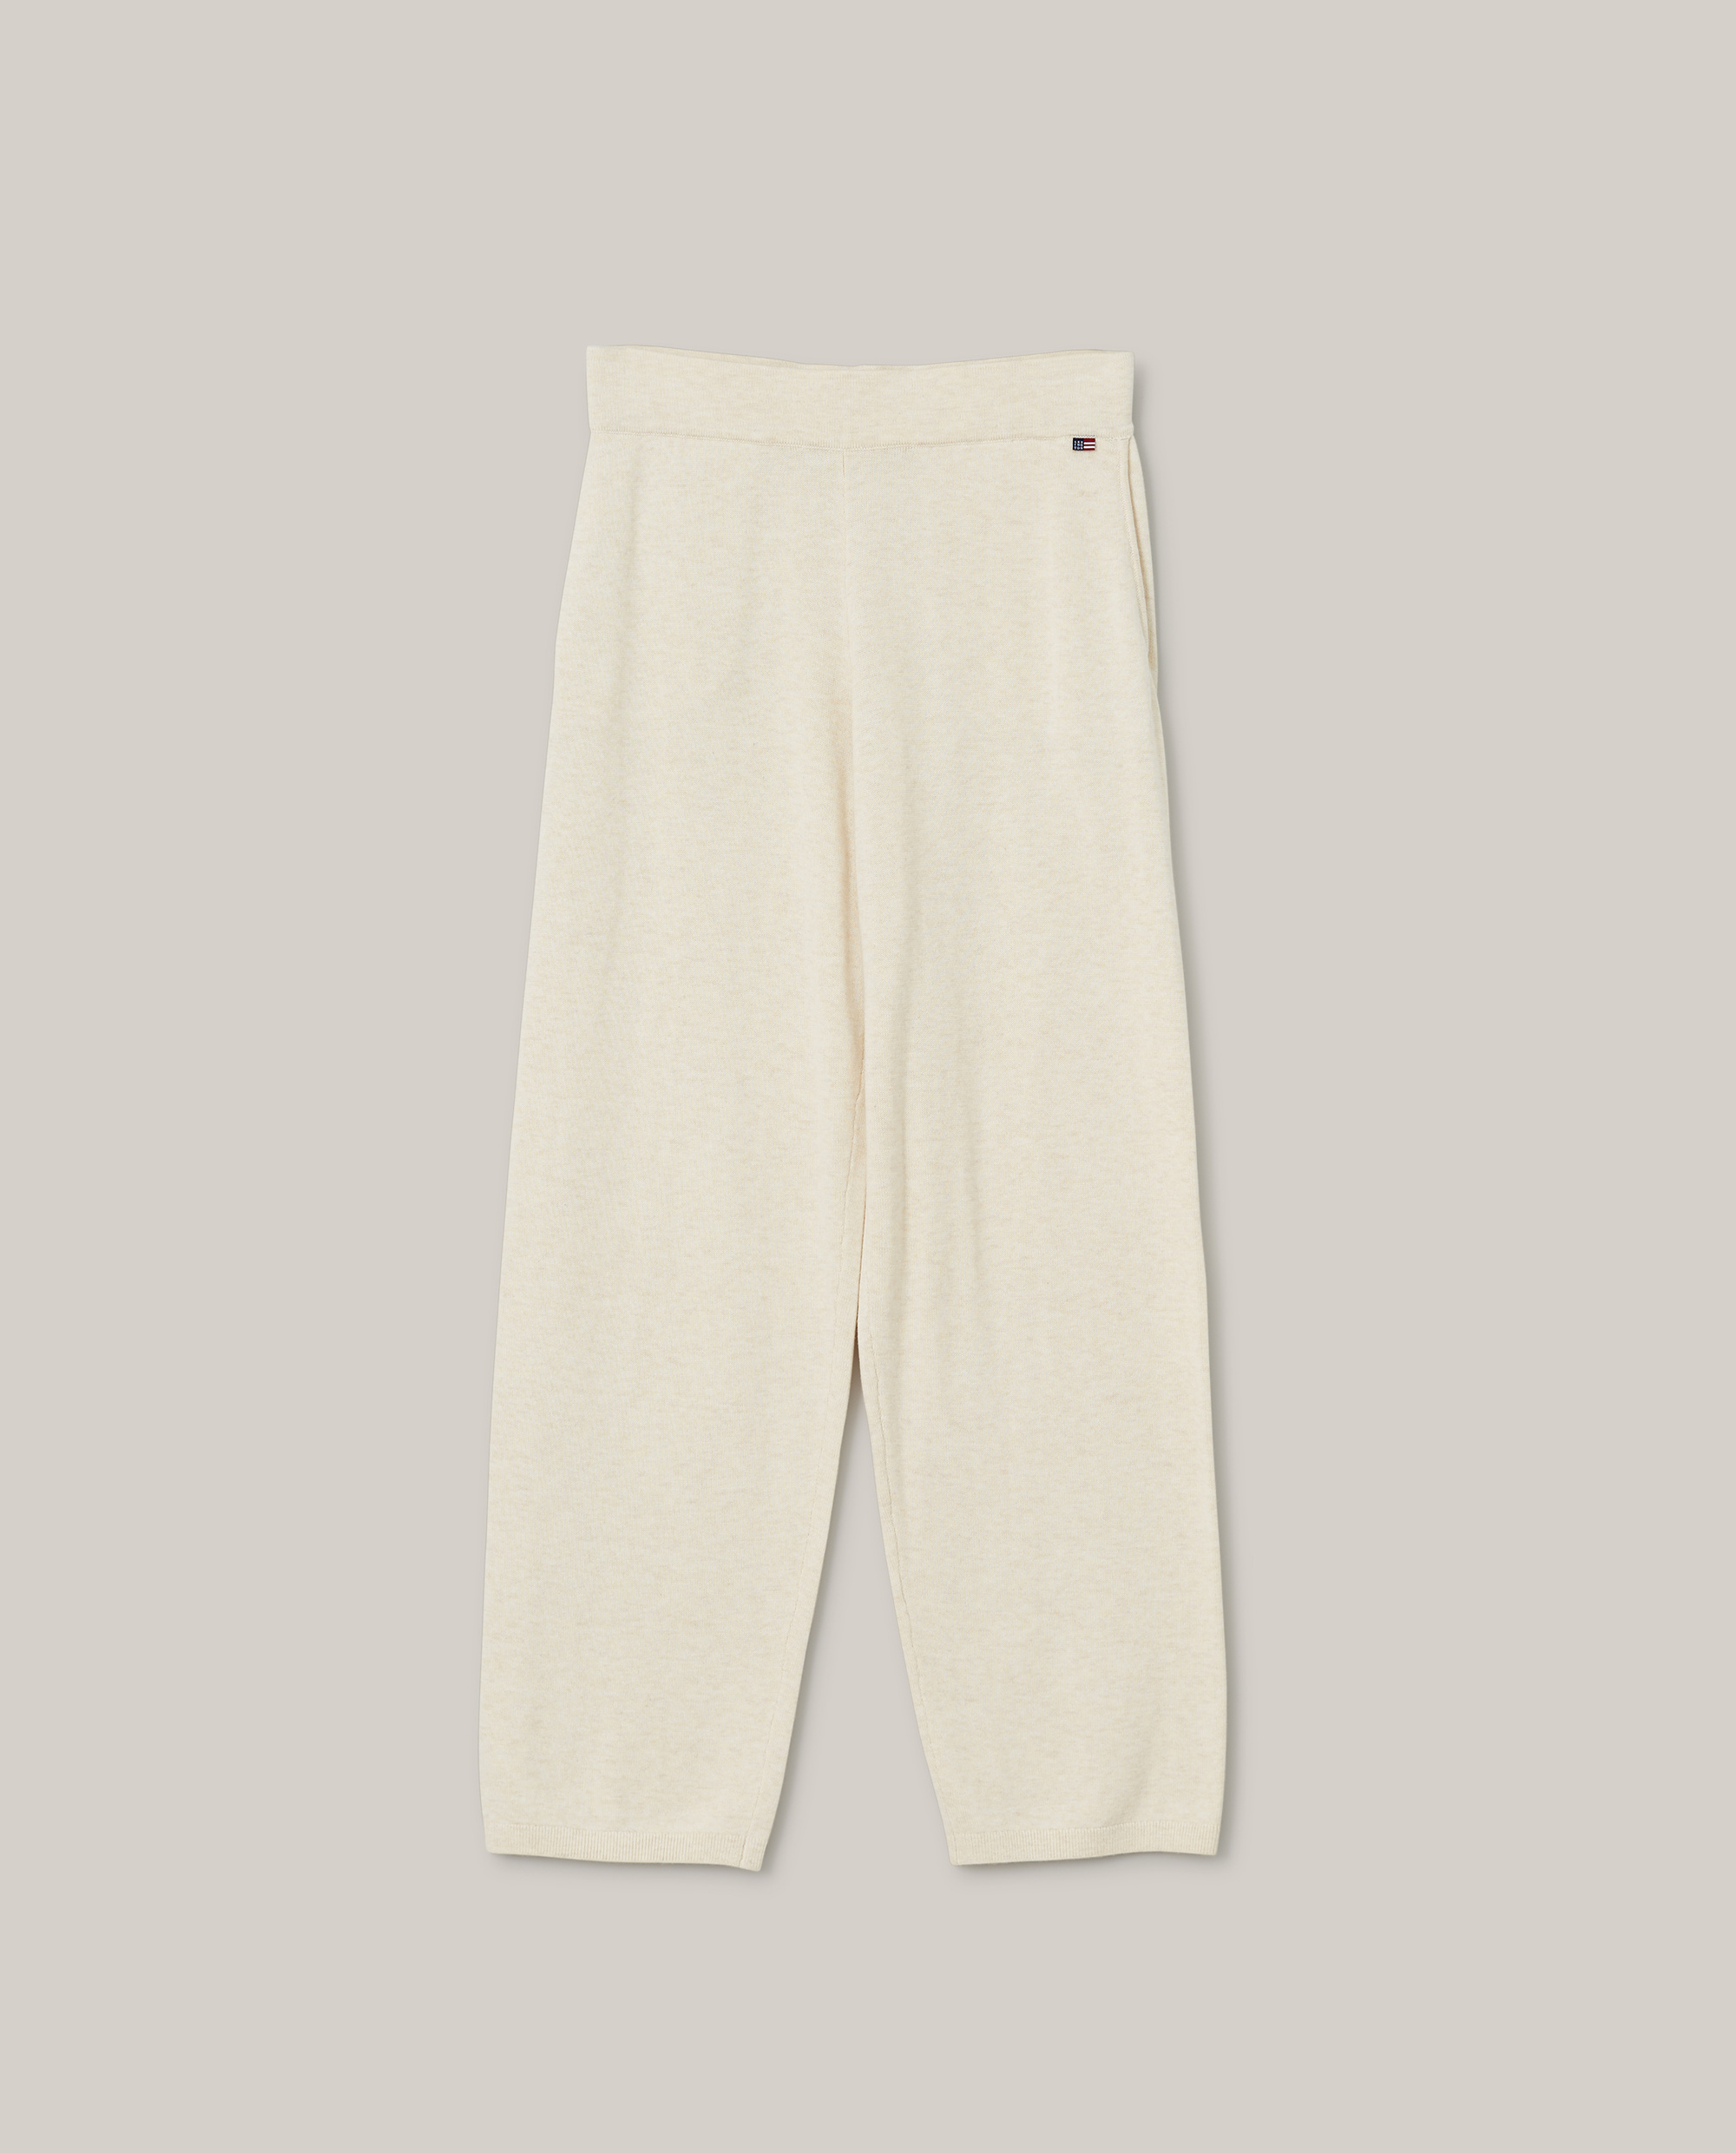 Des Organic Cotton/Lyocell Knitted Pants, Light Beige Melange